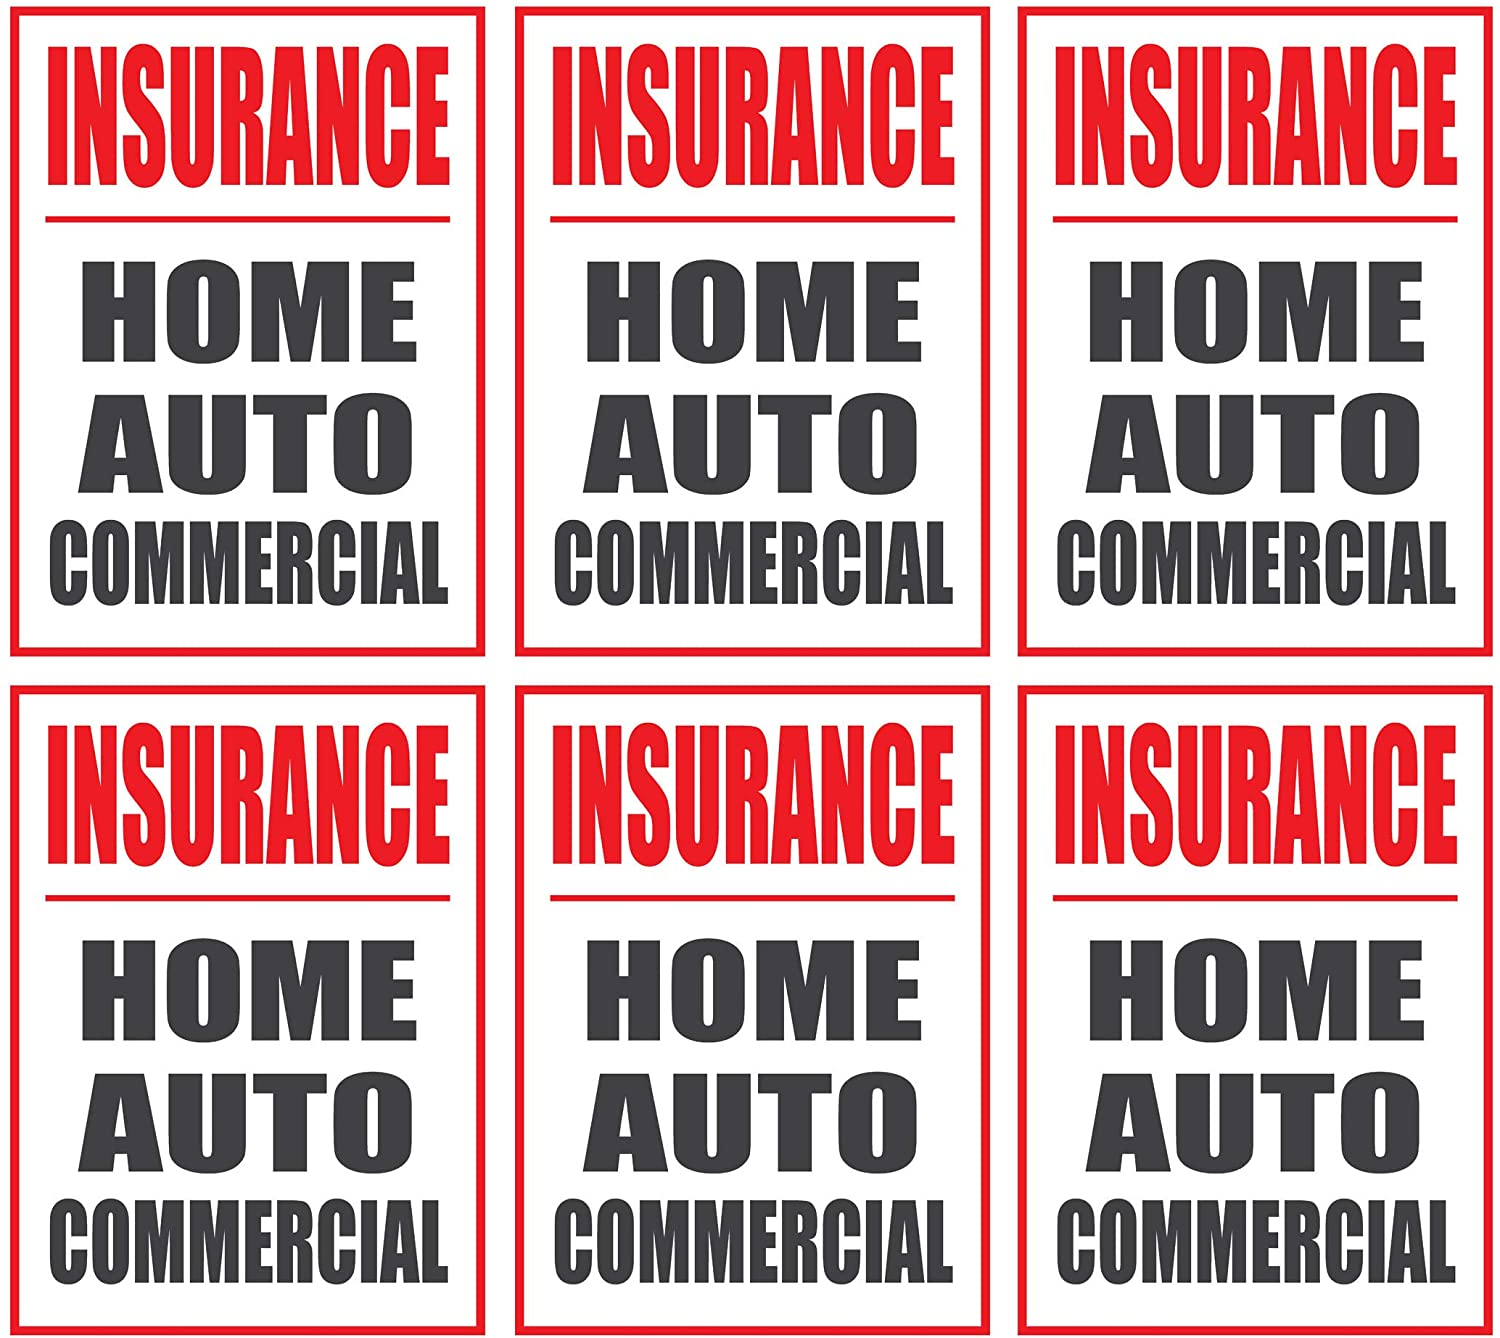 Insurance, Home Auto Commercial | Large Store Window/Wall Retail Display Paper Signs | Red and Black on White | 18